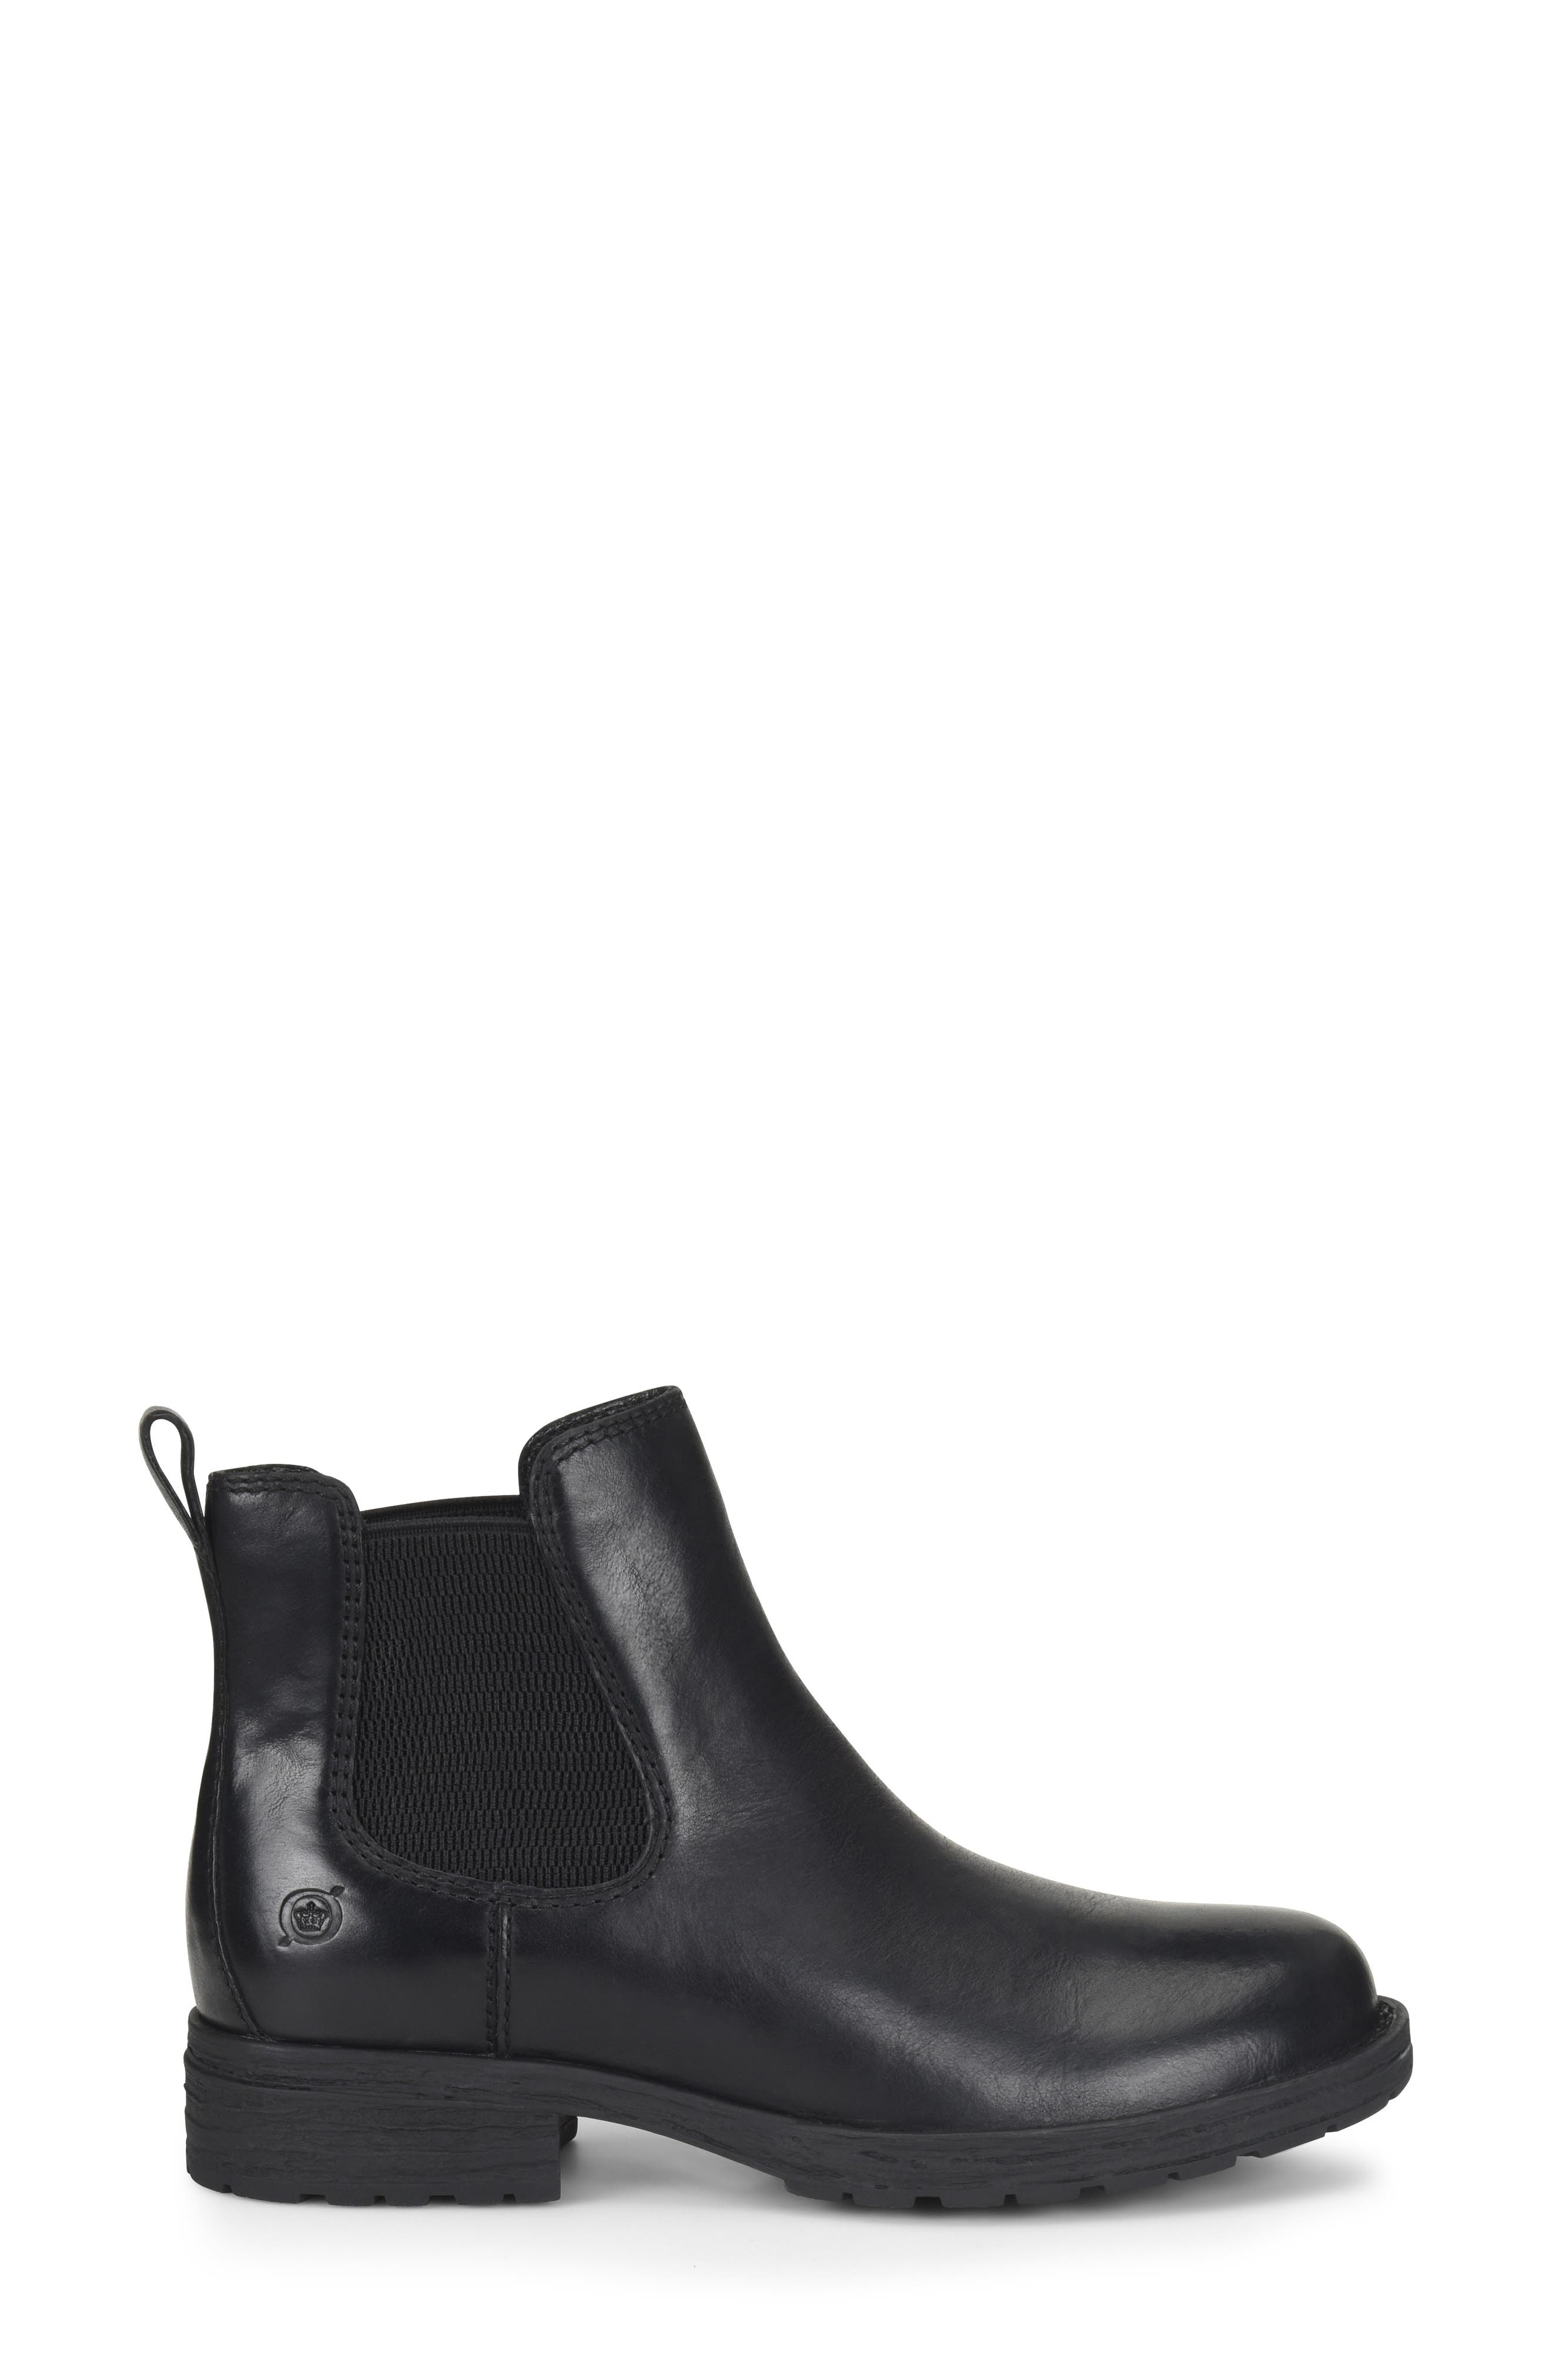 Cove Waterproof Chelsea Boot,                             Alternate thumbnail 3, color,                             BLACK DISTRESSED LEATHER